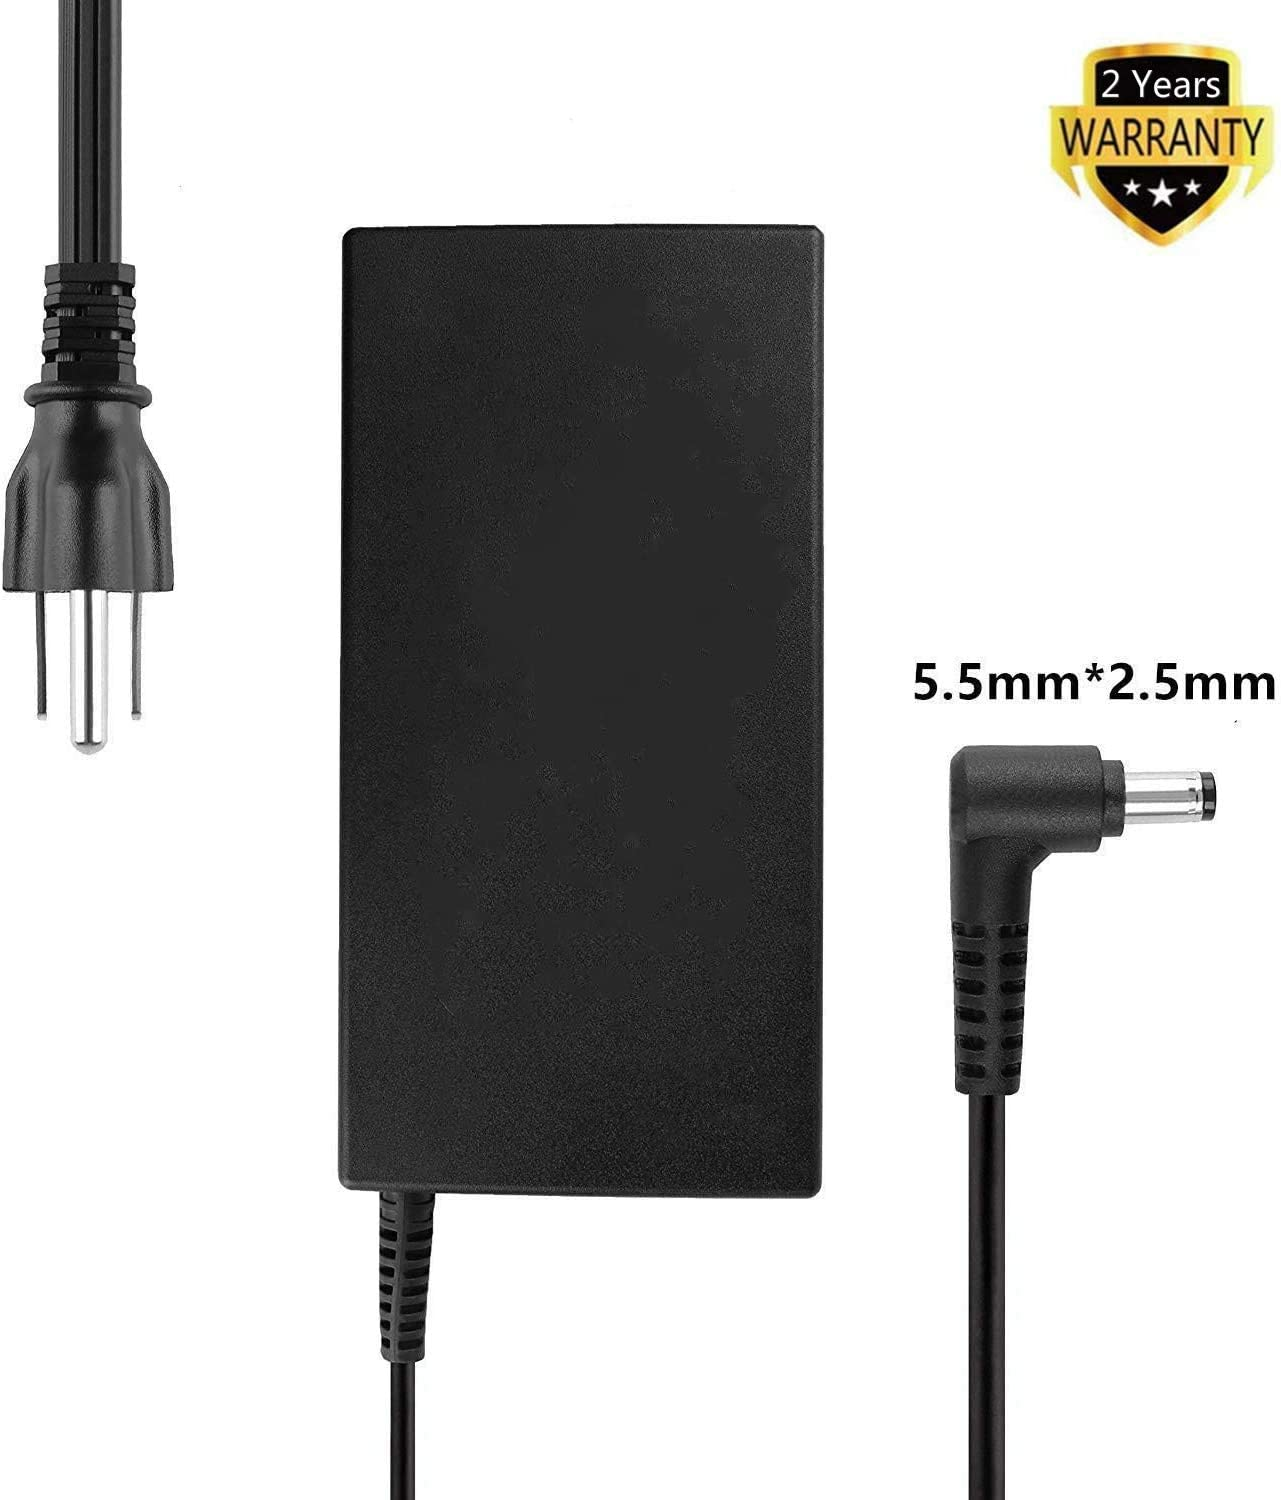 120W Slim Power Cord AC Adapter Charger for MSI Gaming Notebook A12-120P1A A15-120P1A ADP-120MH D MSI GP60 GE60 GE62 GE70 GT640 Lenovo Y730P B470 B475 by ETTECH